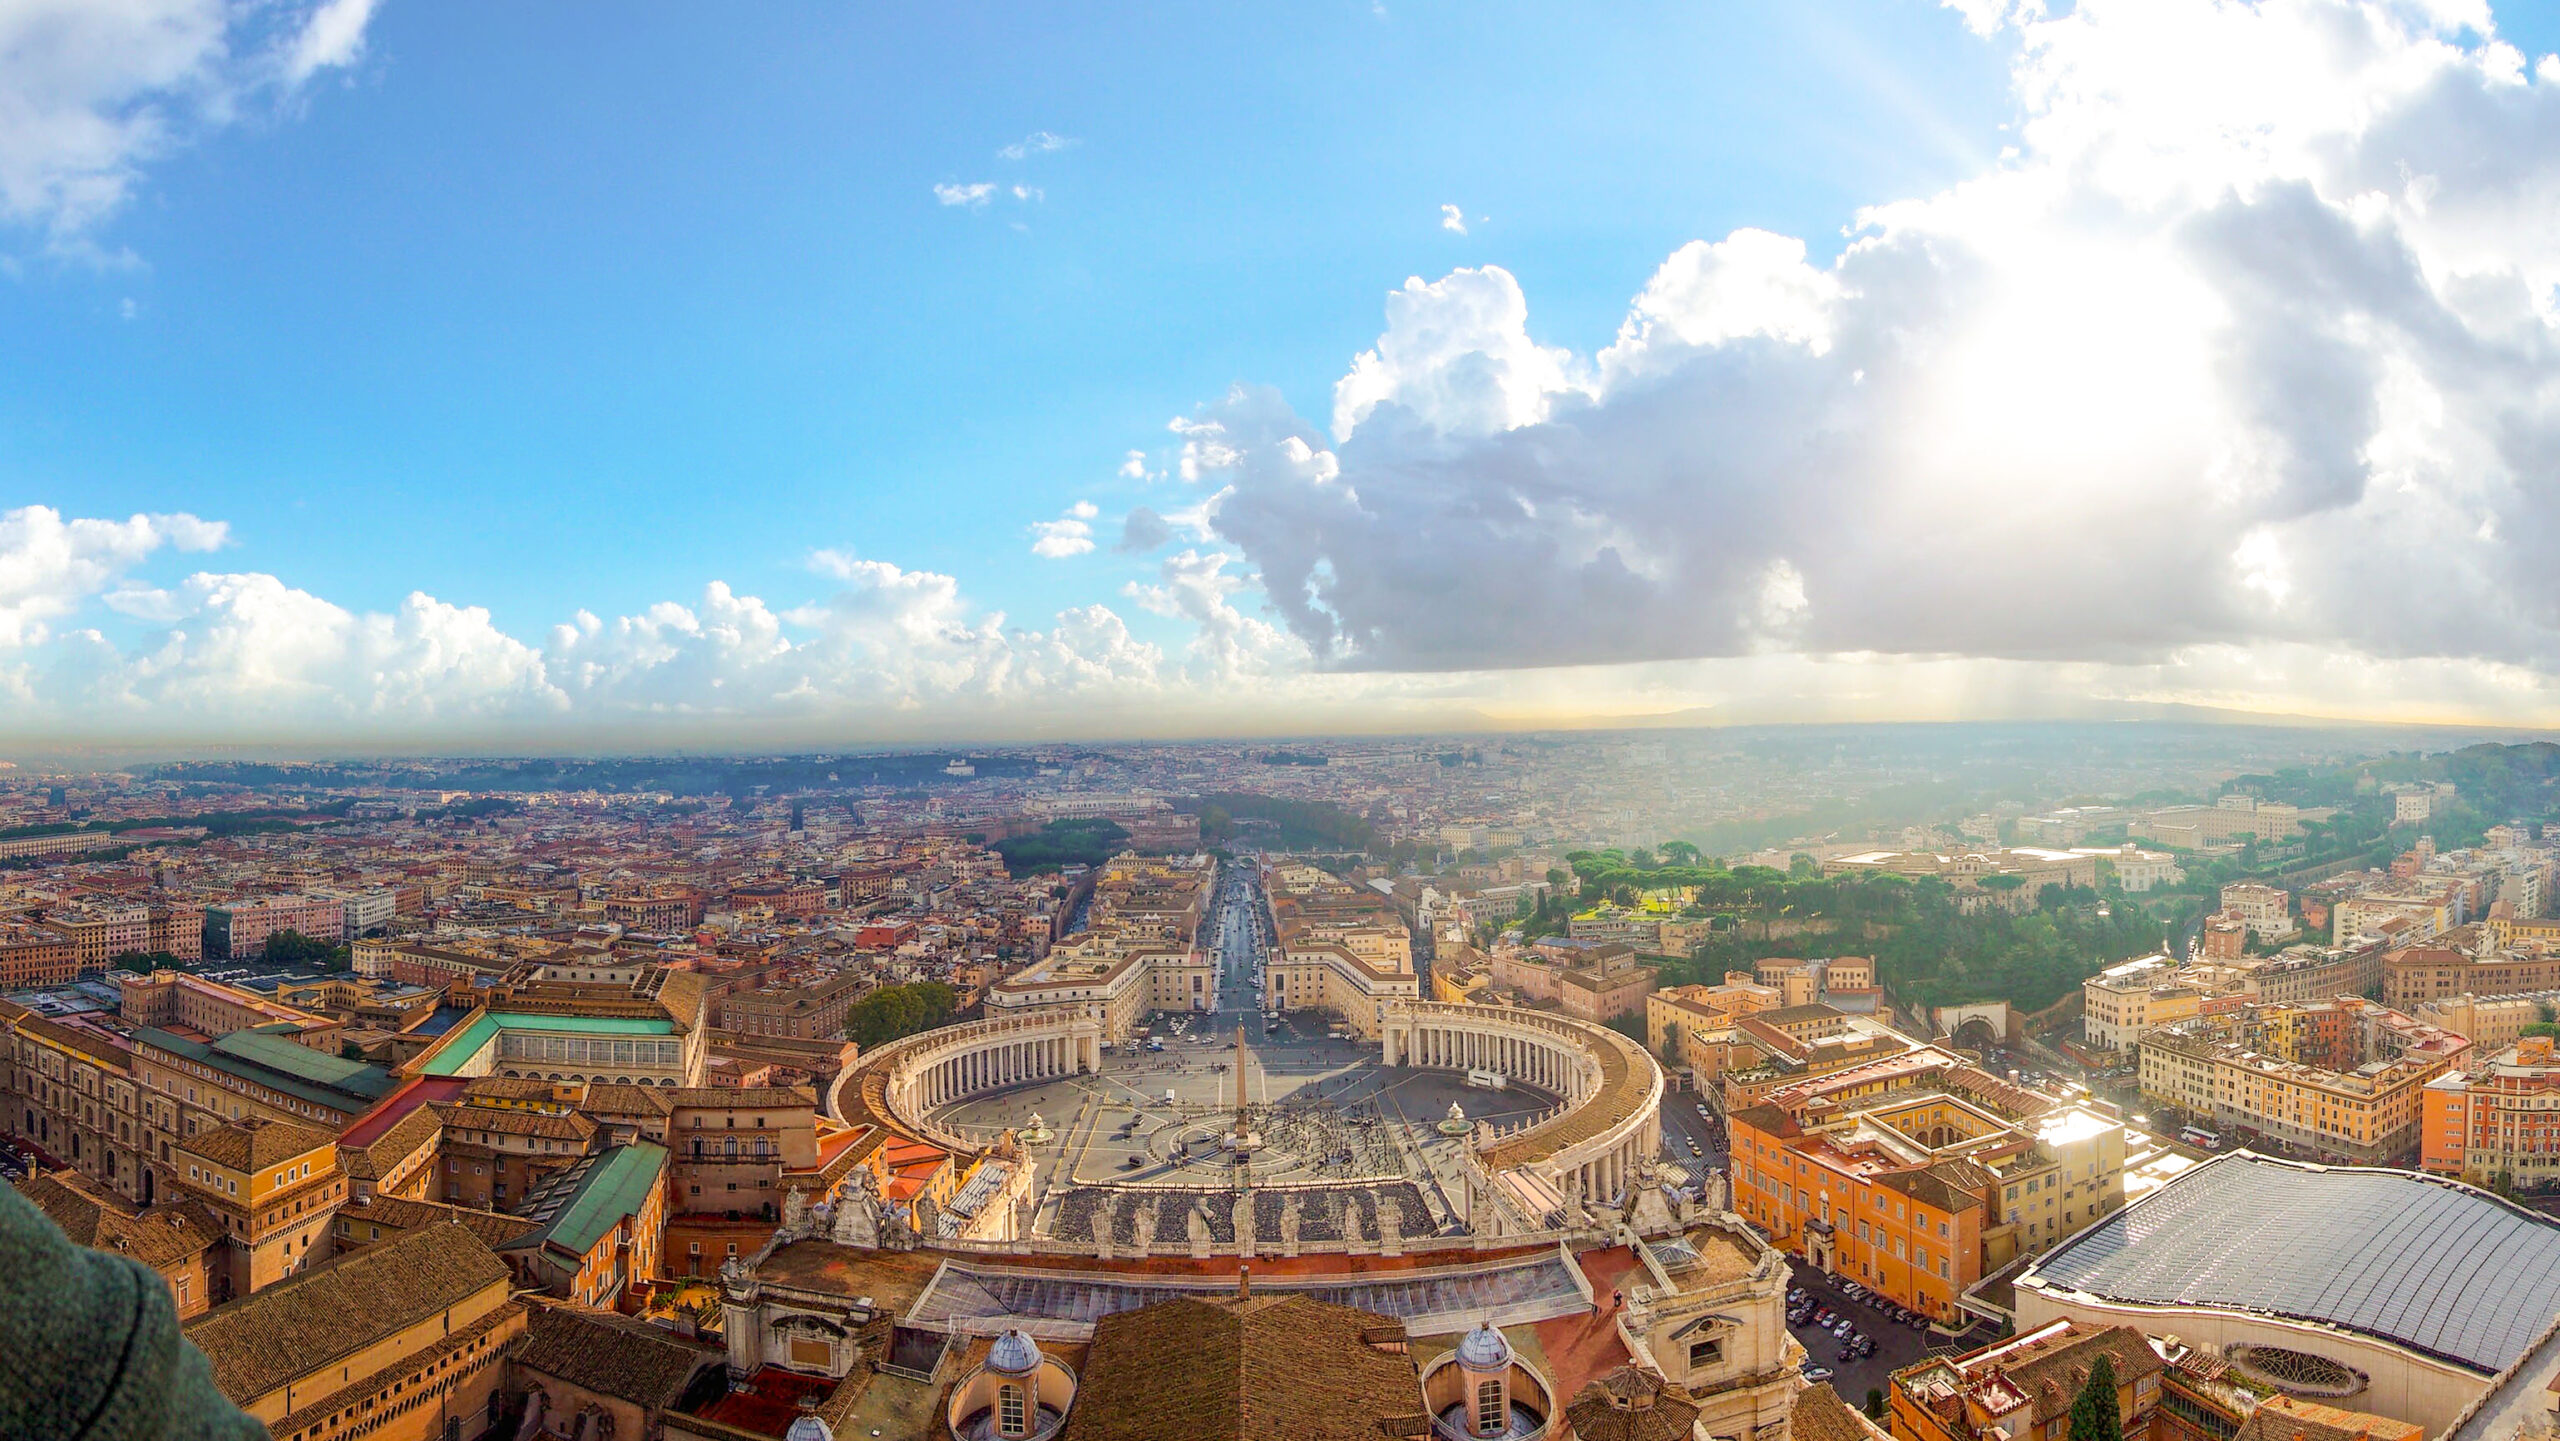 The Vatican from above during sunset